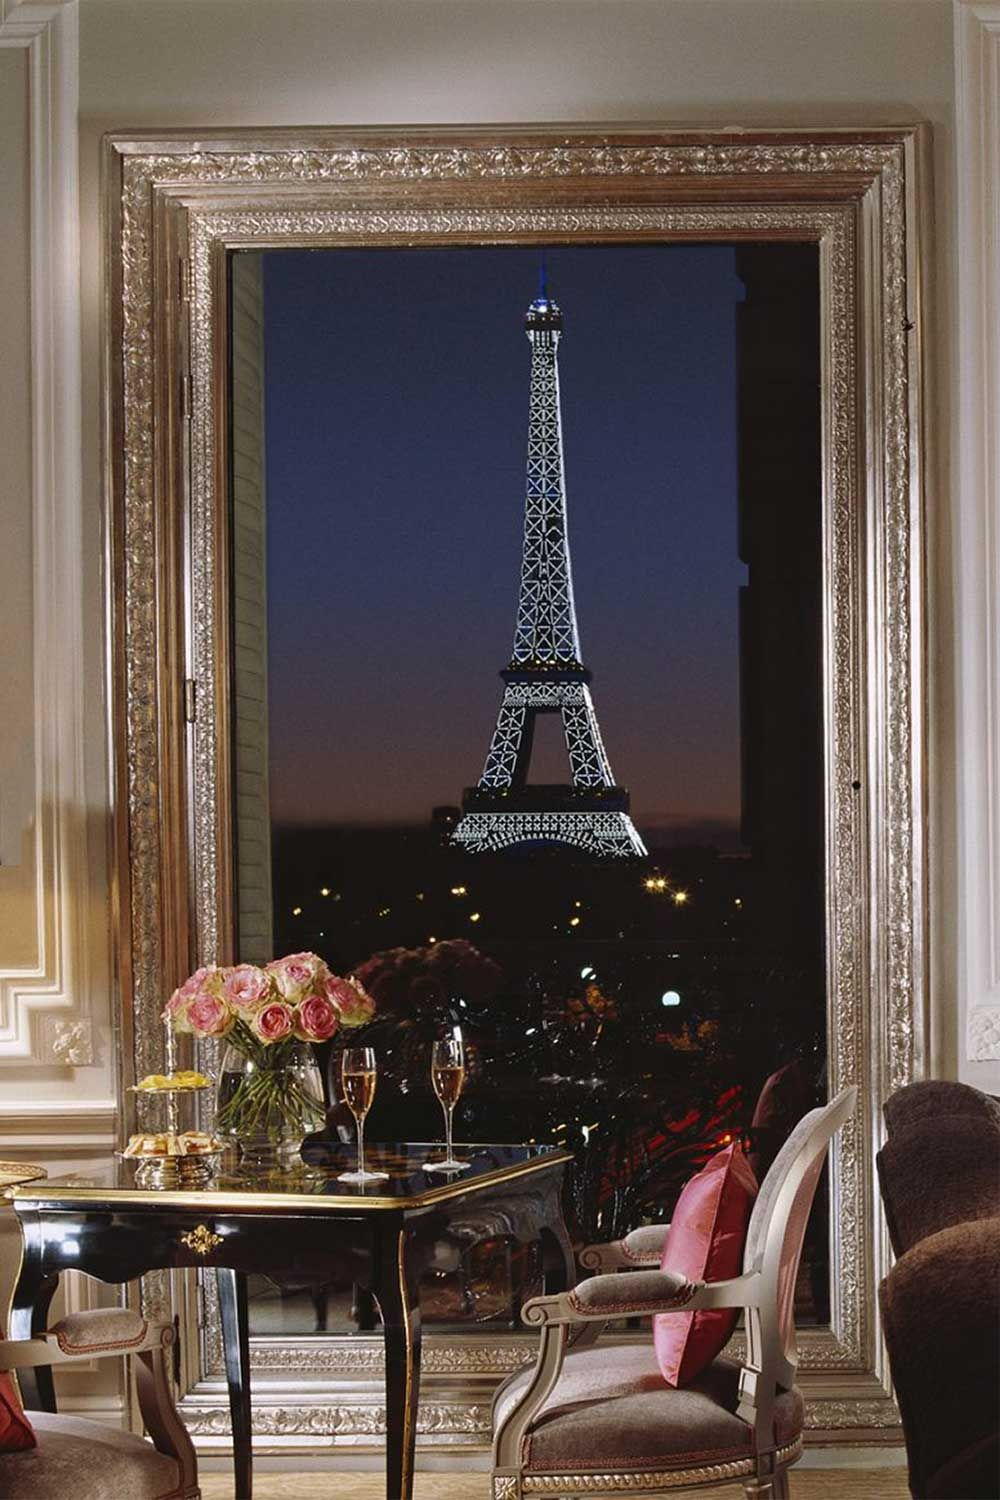 17 Instagrammable Paris Hotels With Eiffel Tower Views Paris